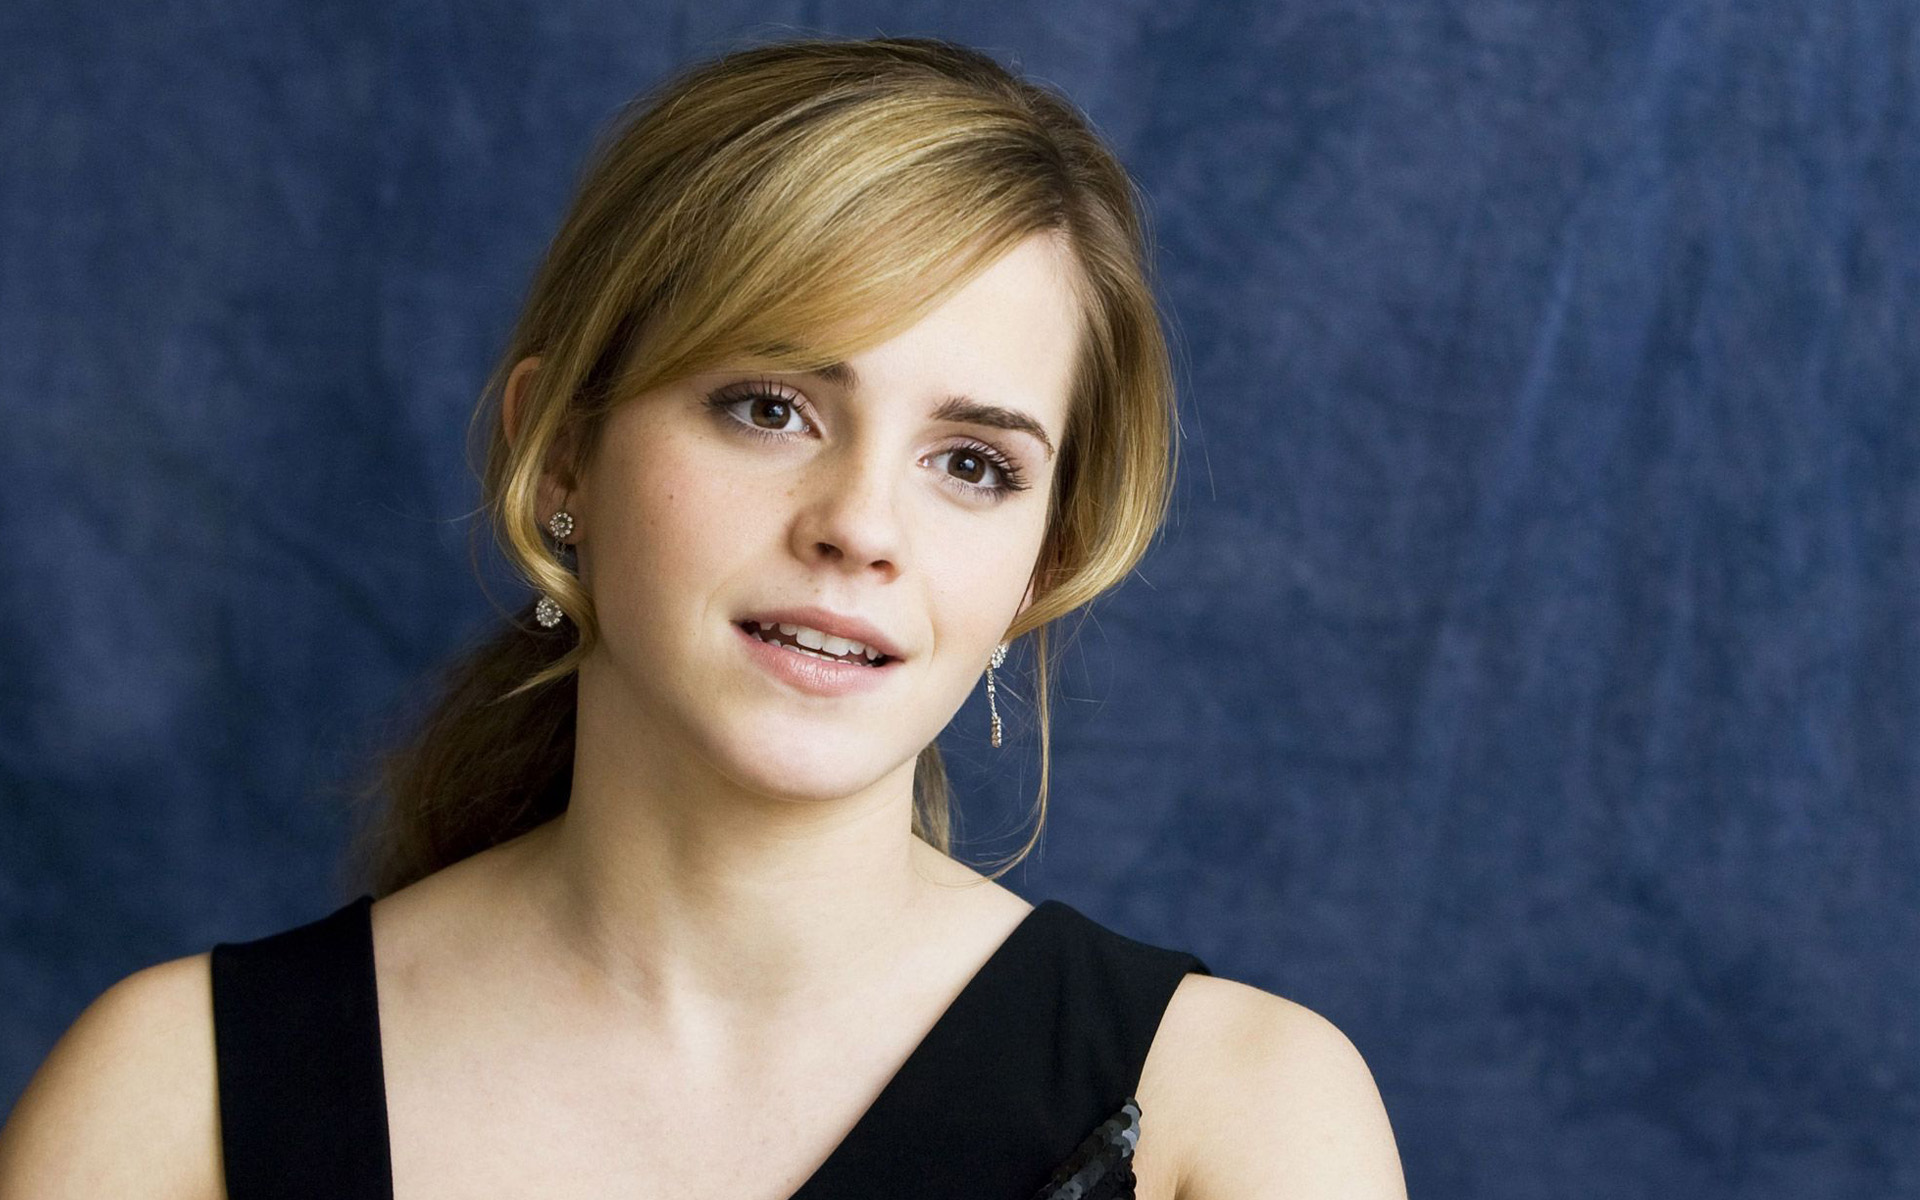 https://hdwallsource.com/img/2016/5/emma-watson-desktop-wallpaper-50402-52093-hd-wallpapers.jpg